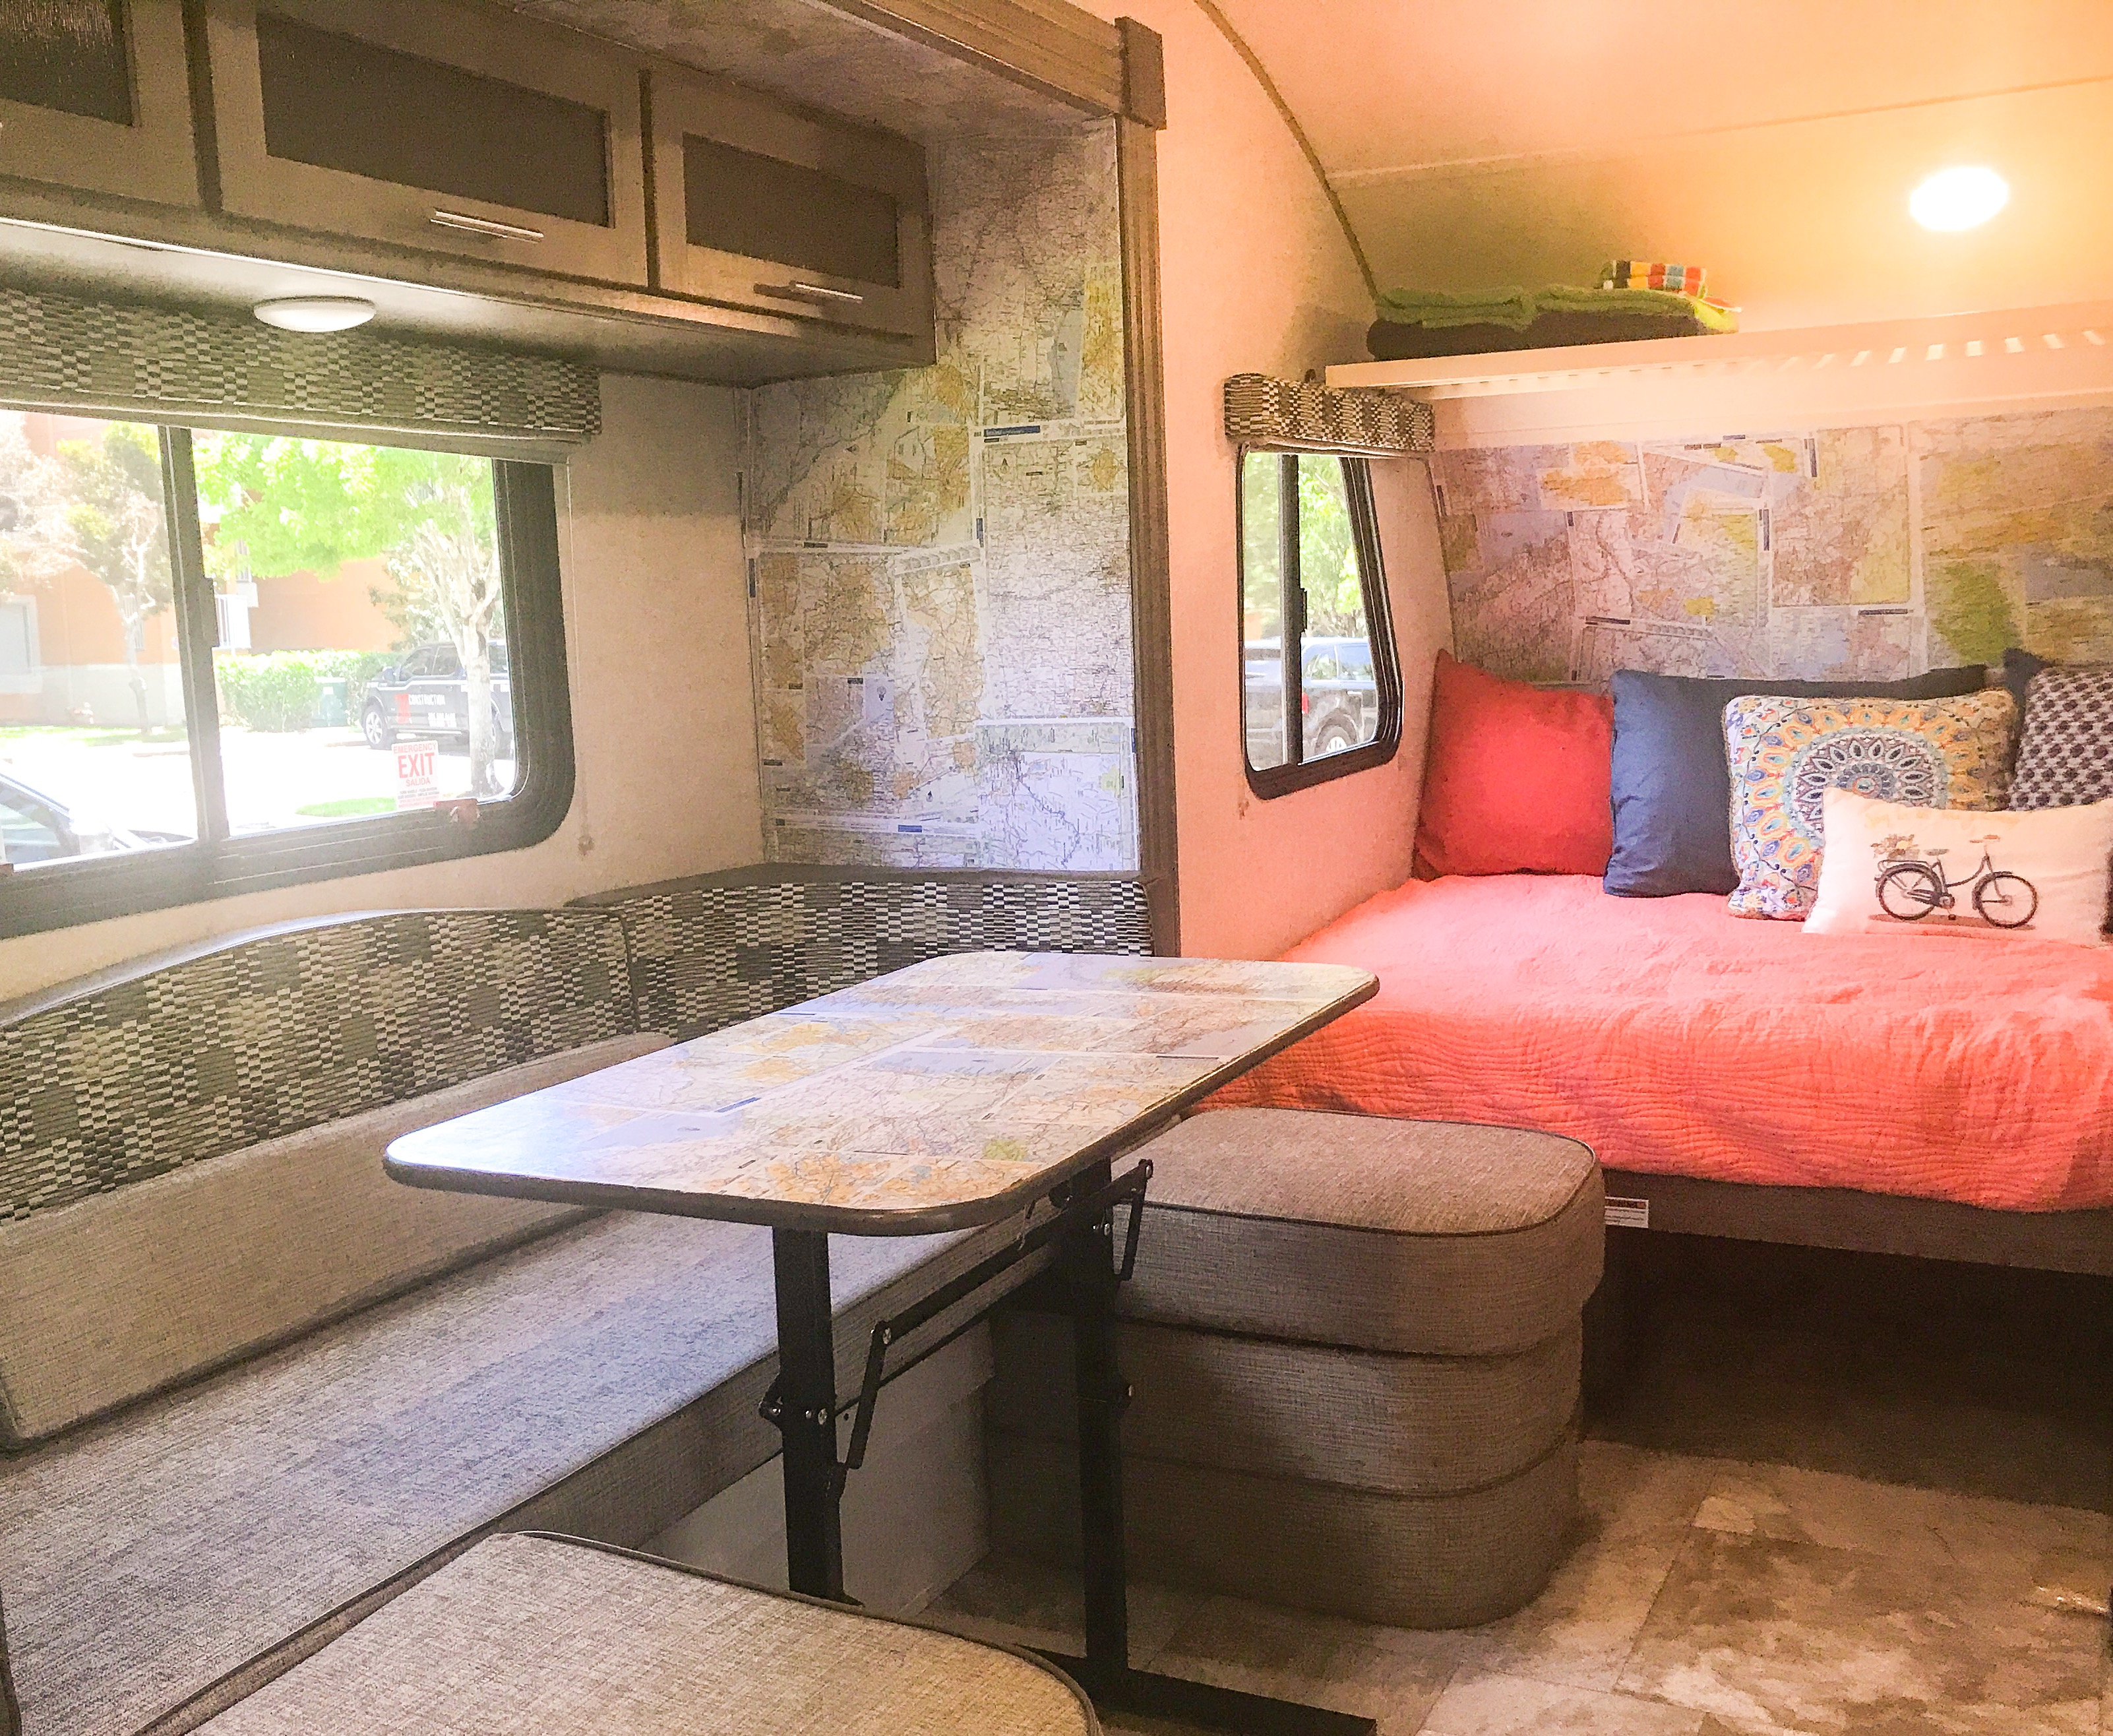 Get ideas for where to go next by just looking at the walls and plan your adventure!!  Queen sized bed in master